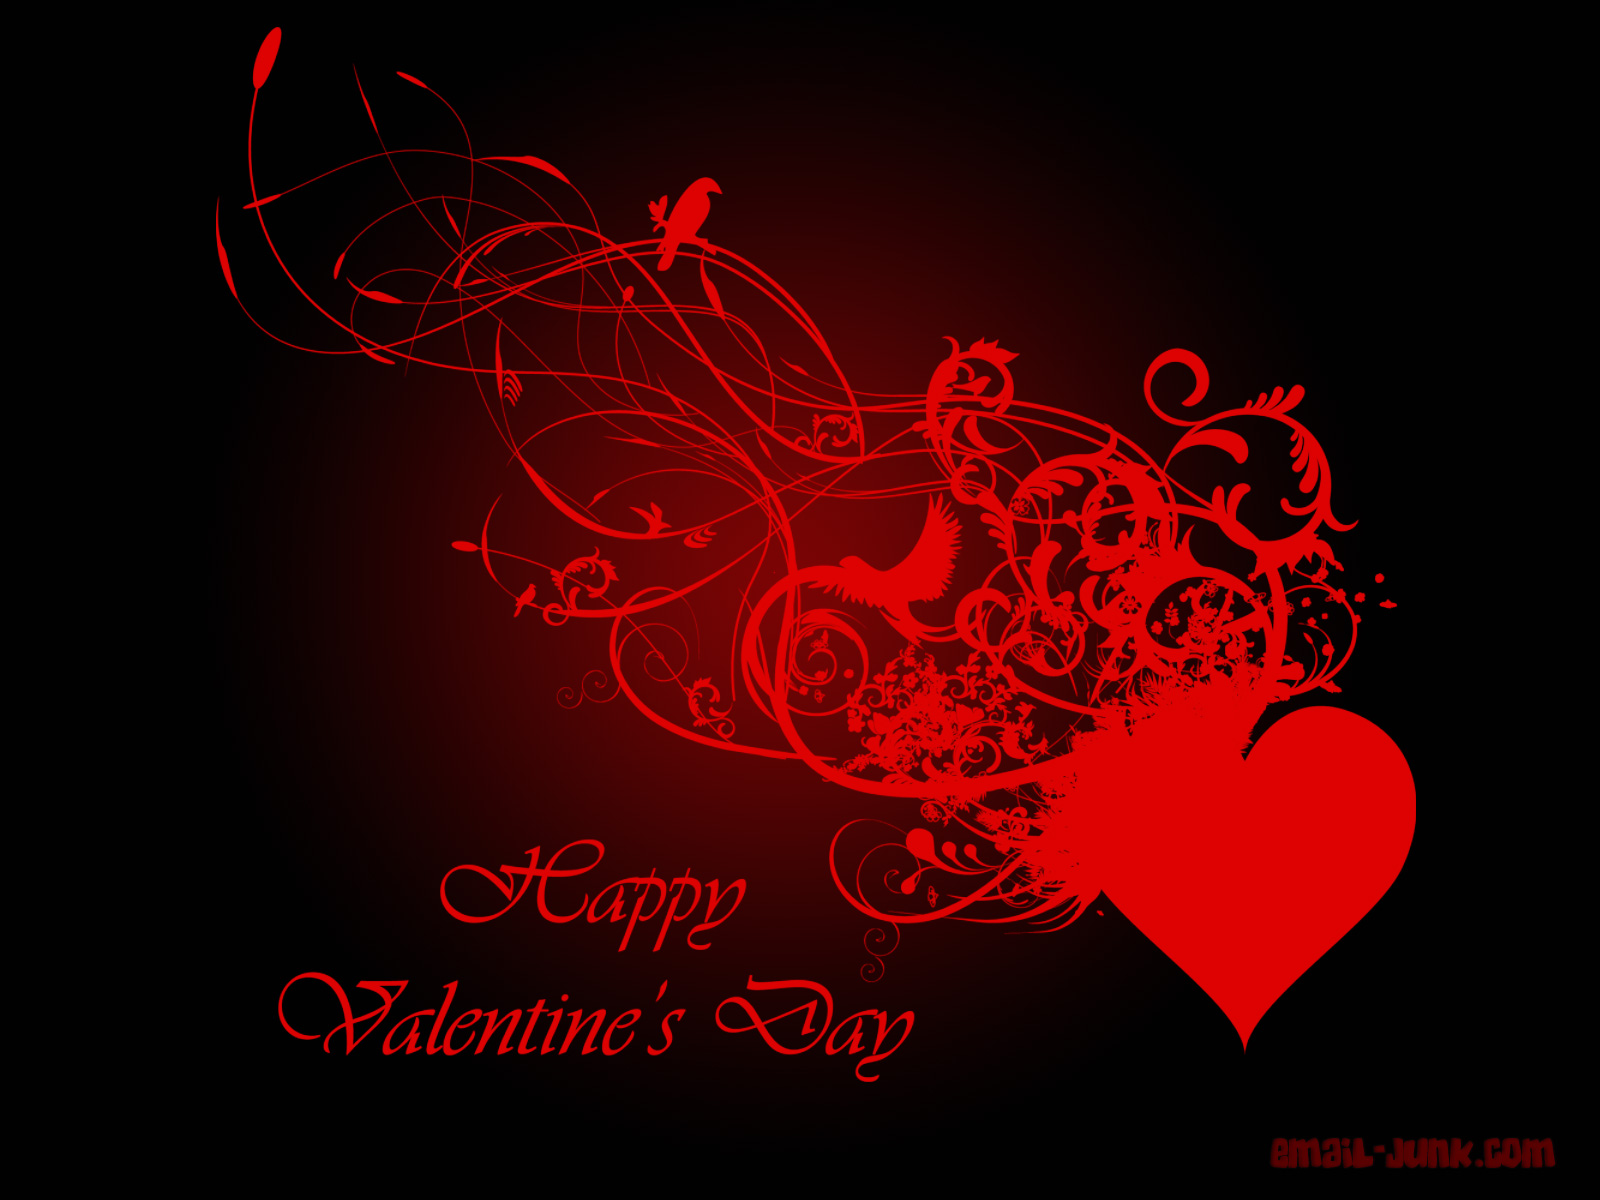 Valentines Day Wallpapers   Top Valentines Day Backgrounds 1600x1200